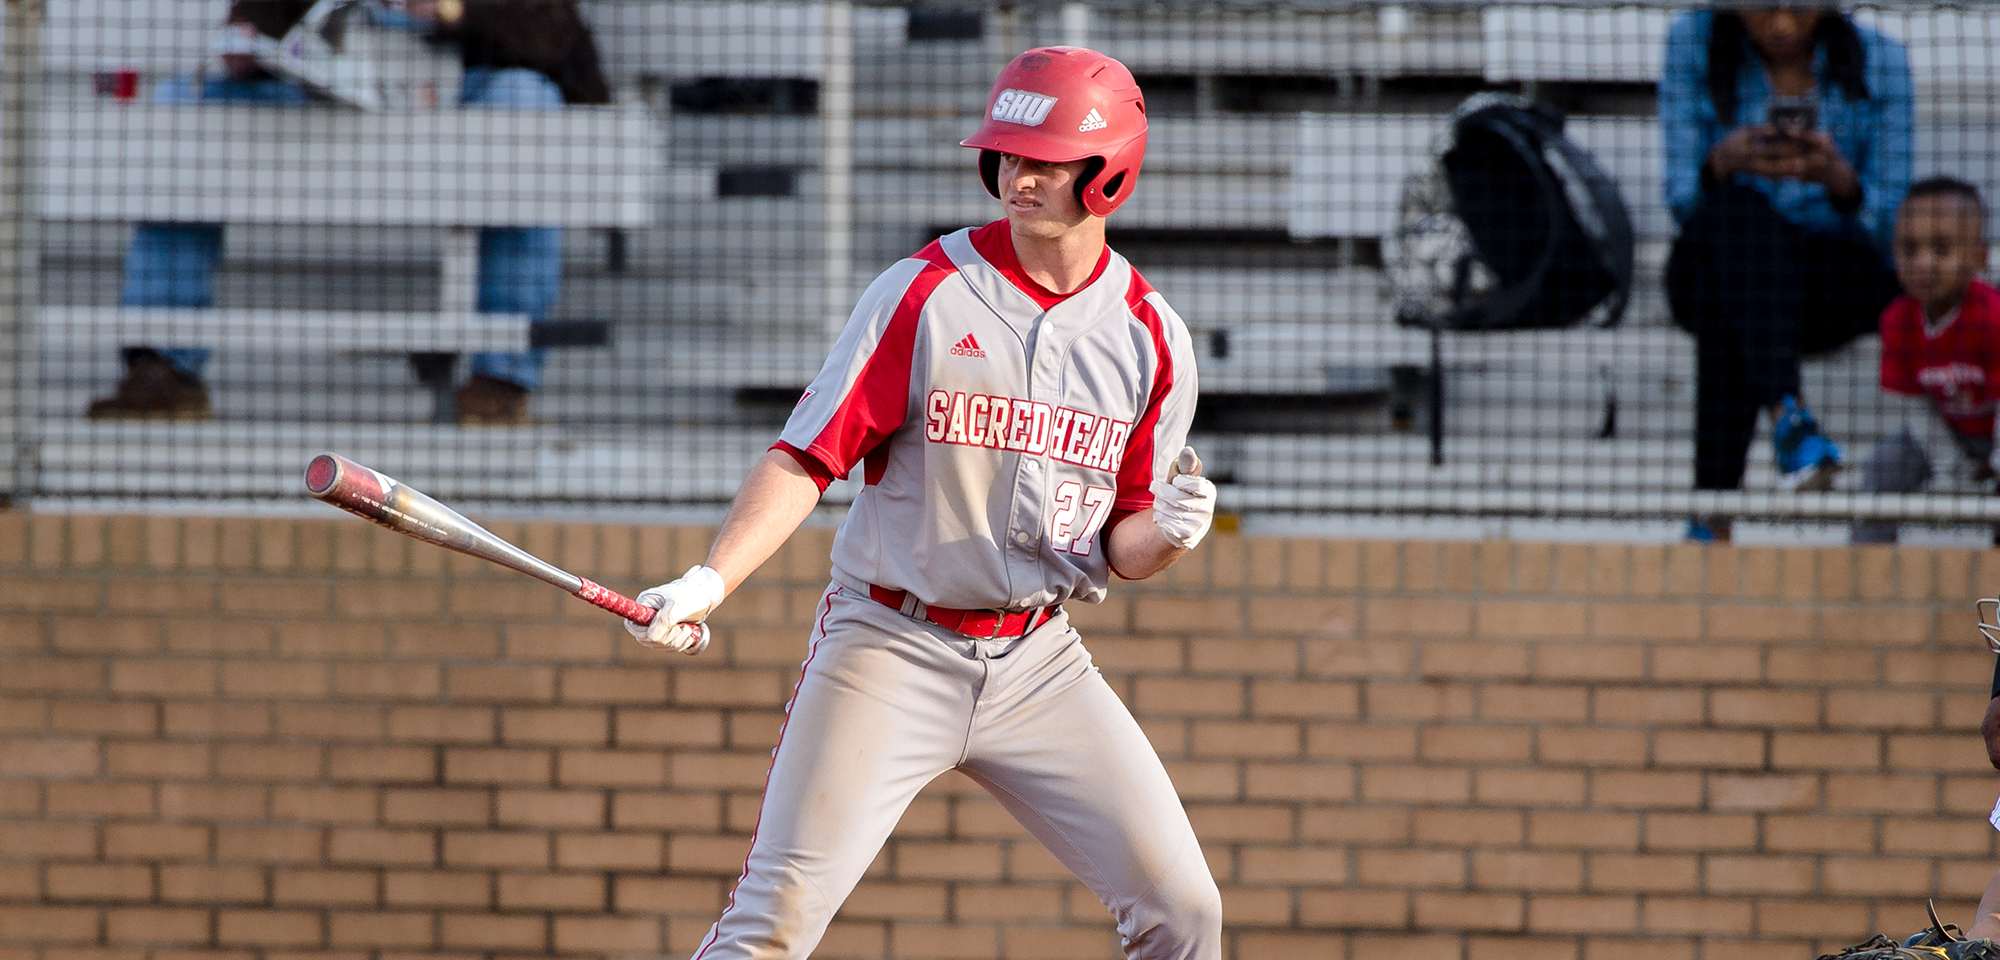 Walkoff Hit In Game Two Seals Doubleheader Sweep For SHU Baseball Over LIU Brooklyn